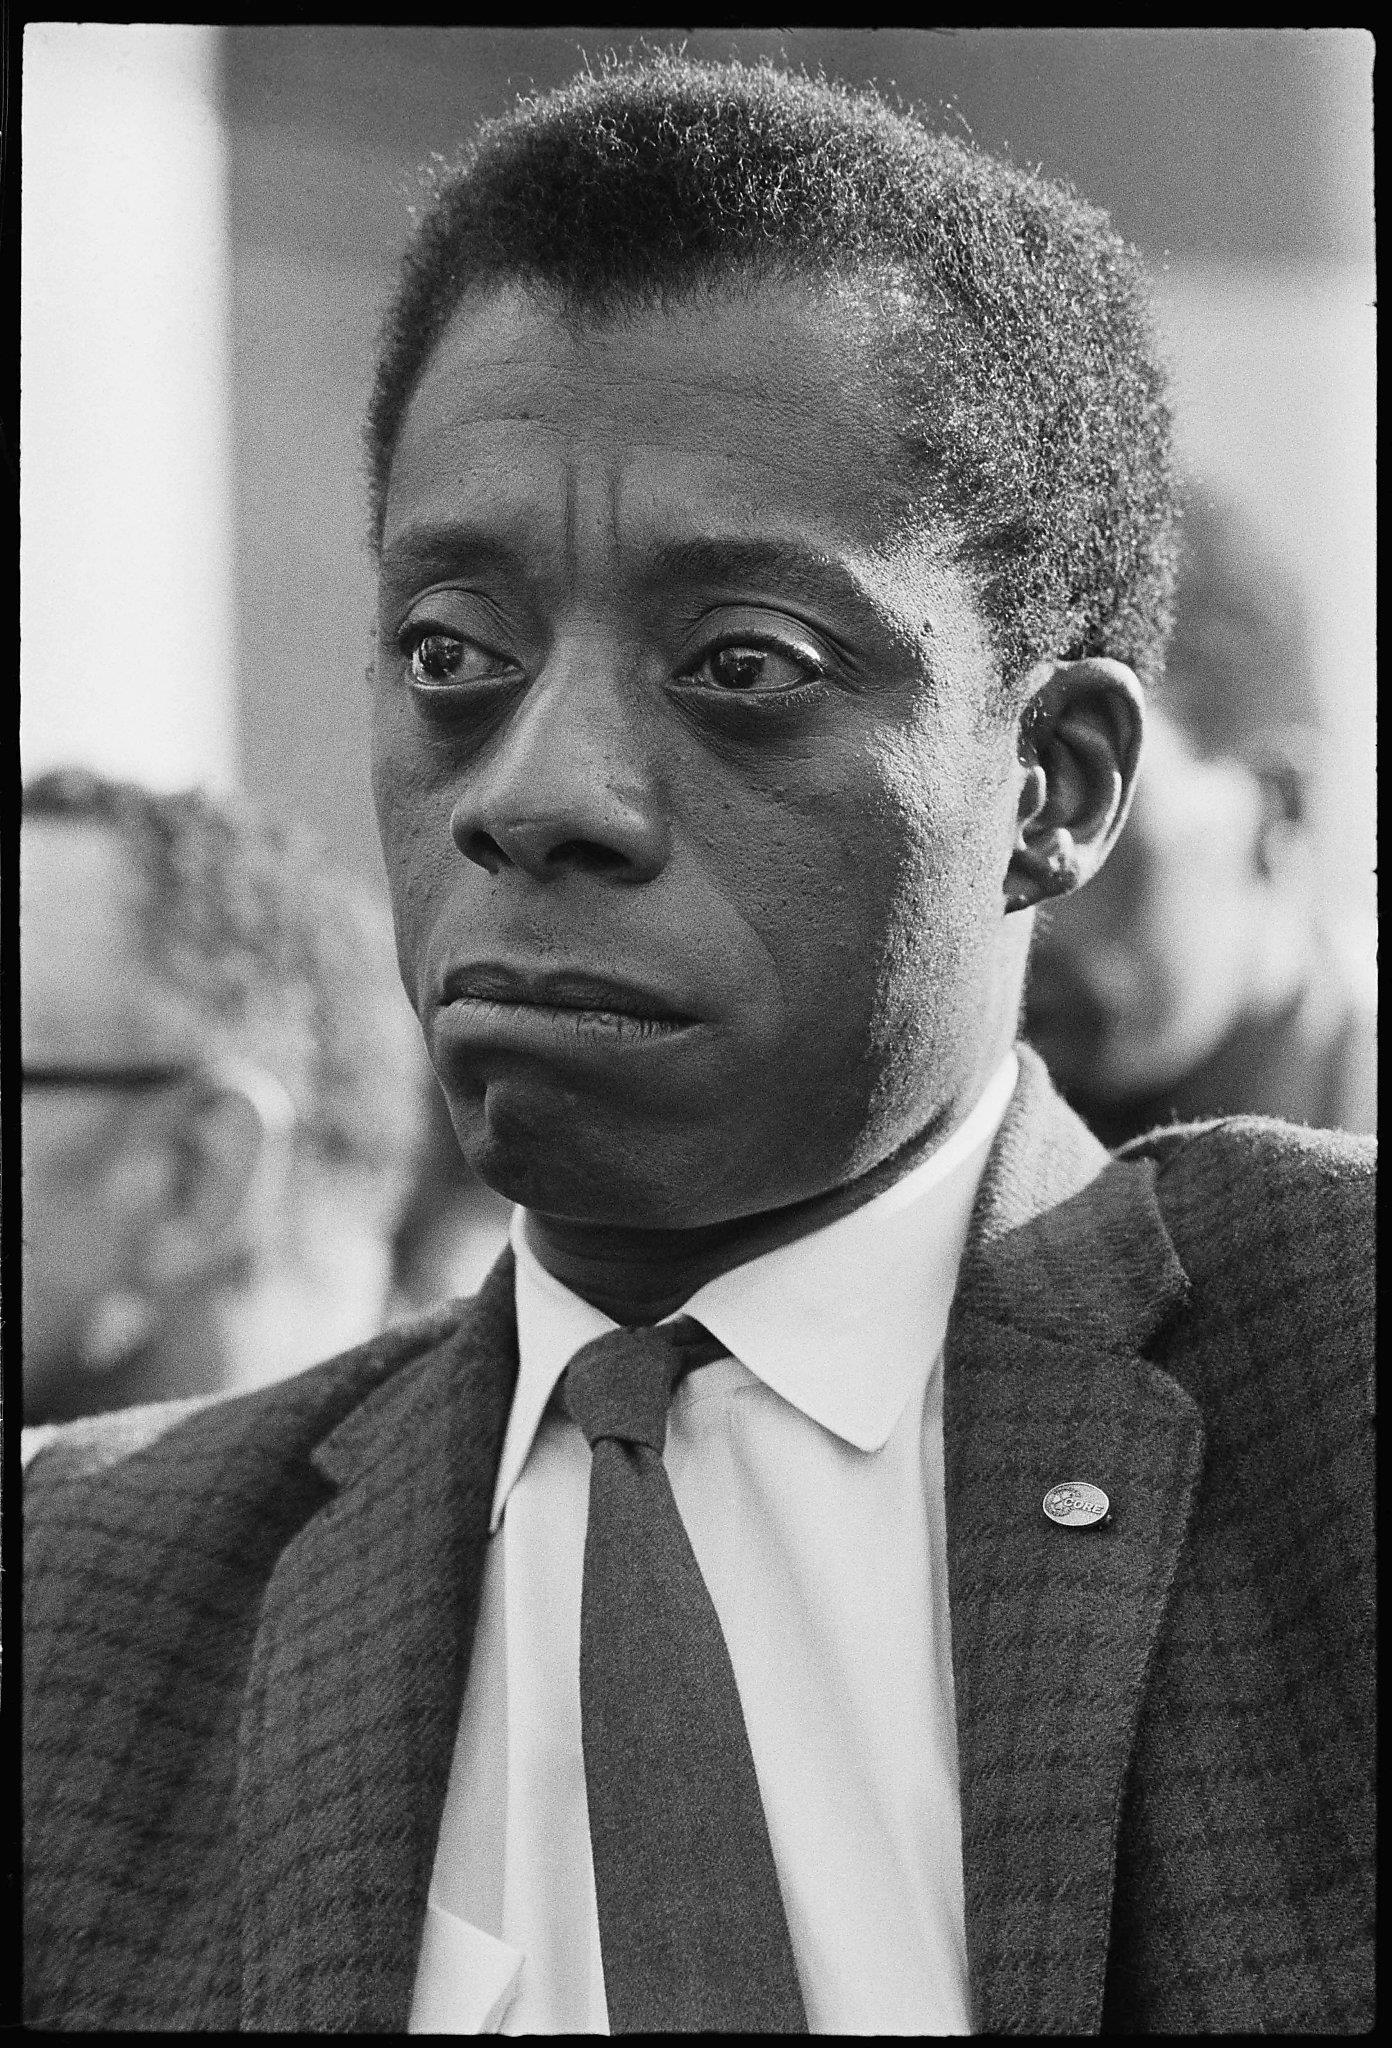 james arthur baldwin essays Early life james arthur baldwin was an american poet, novelist, essayist, playwright, and social critic he was born august 2, 1924 to emma berdis jones baldwin's mother never told him the name of his biological father.